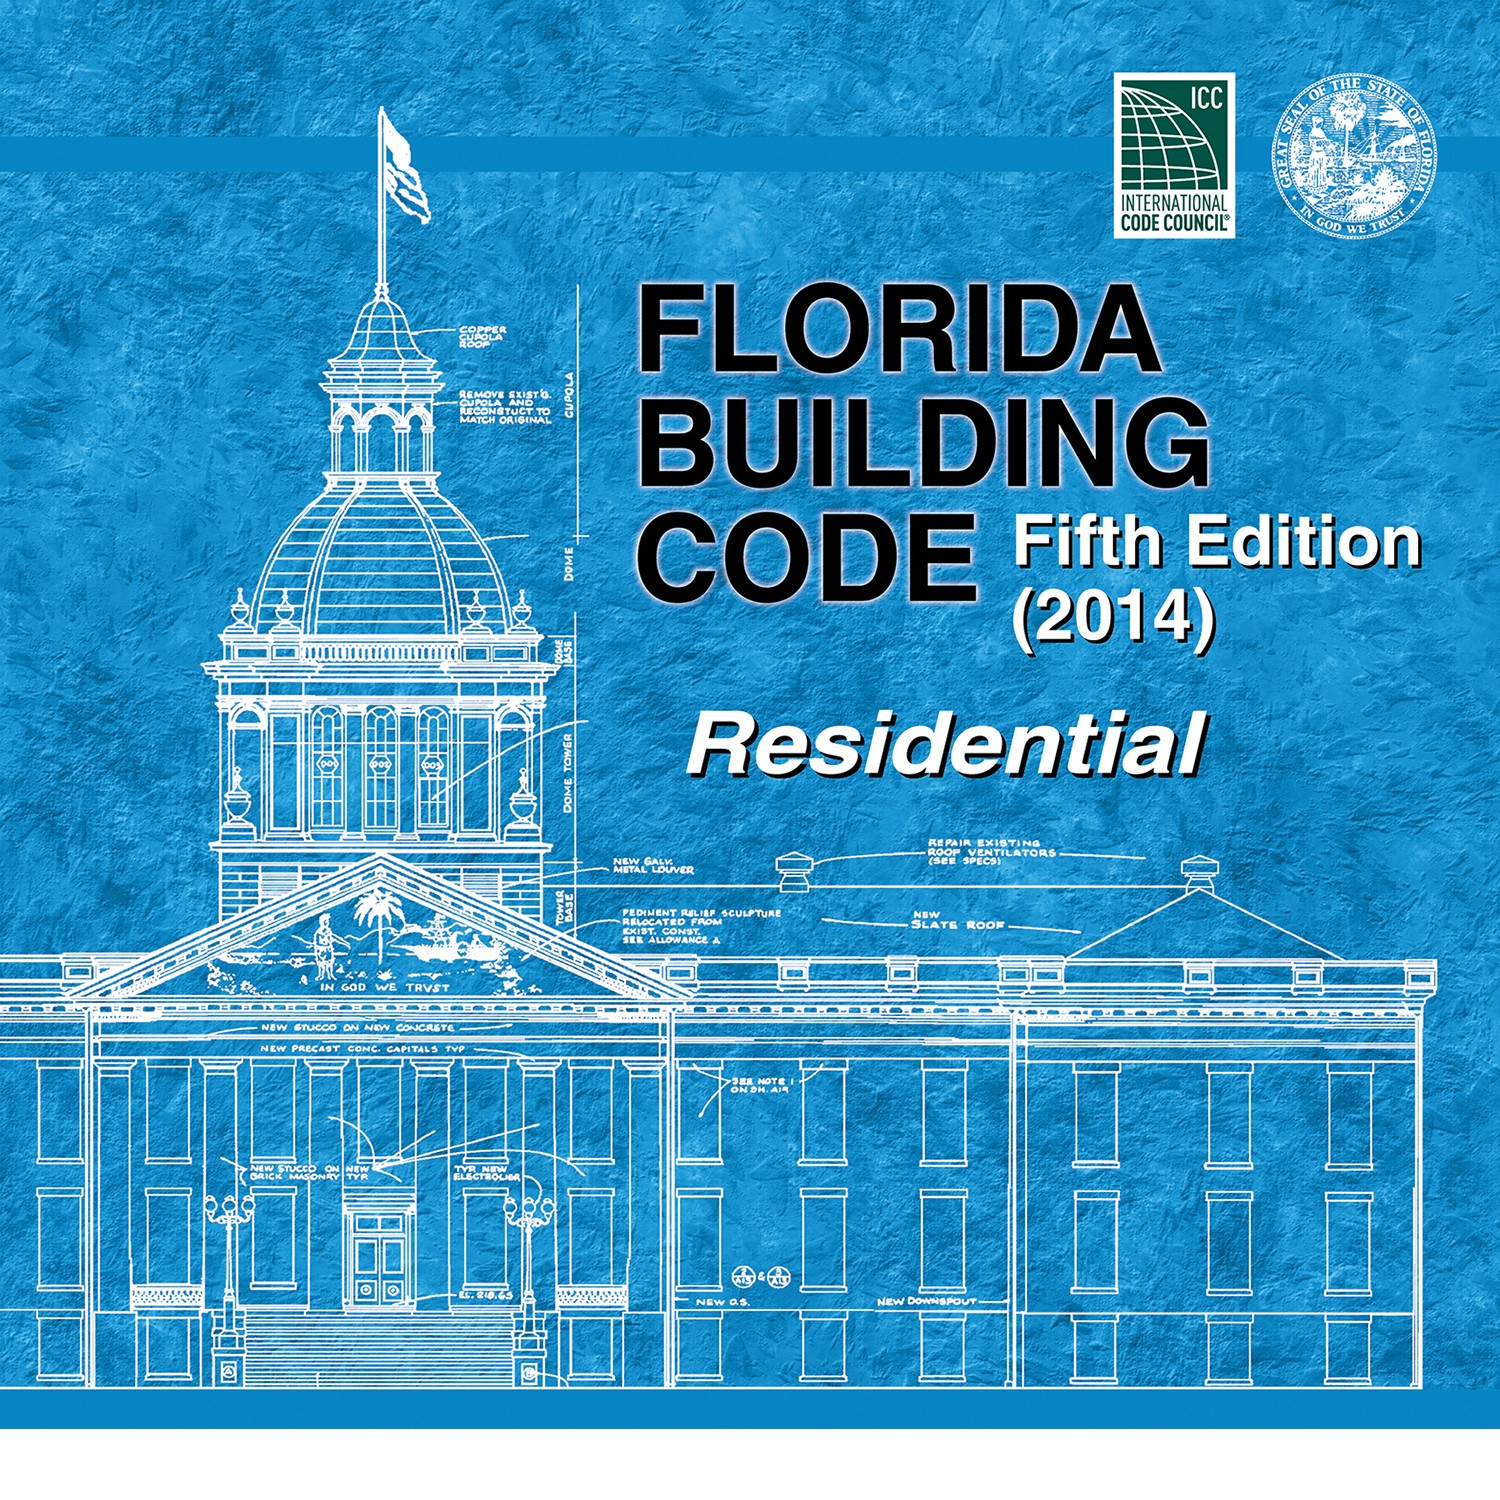 Florida Building Code 5th edition - Residential , 2014. International Code Council